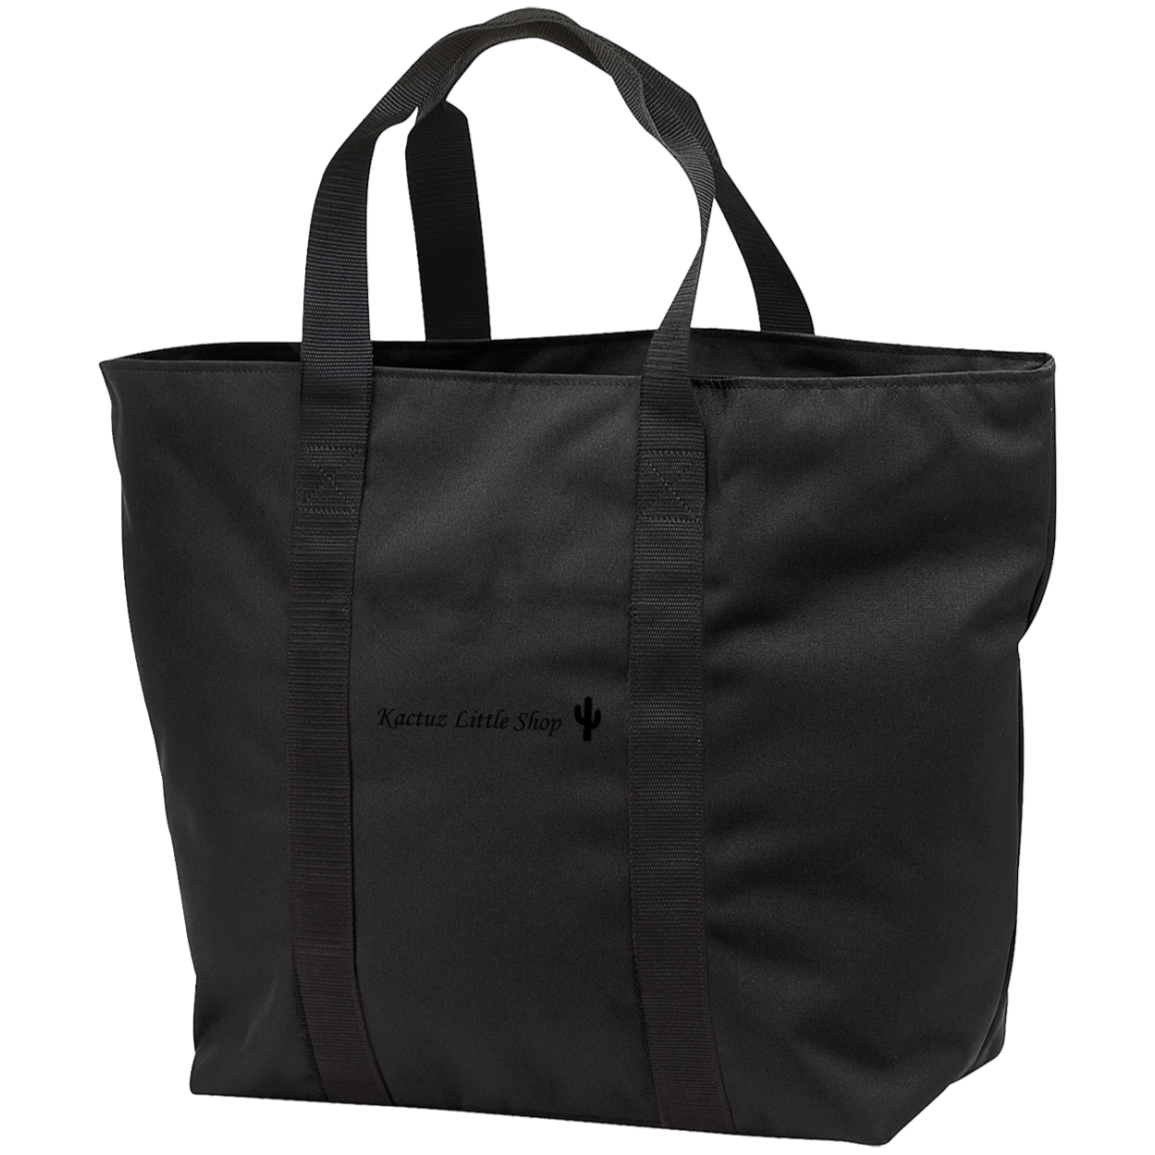 Kactuz Little Shop All Purpose Tote Bag